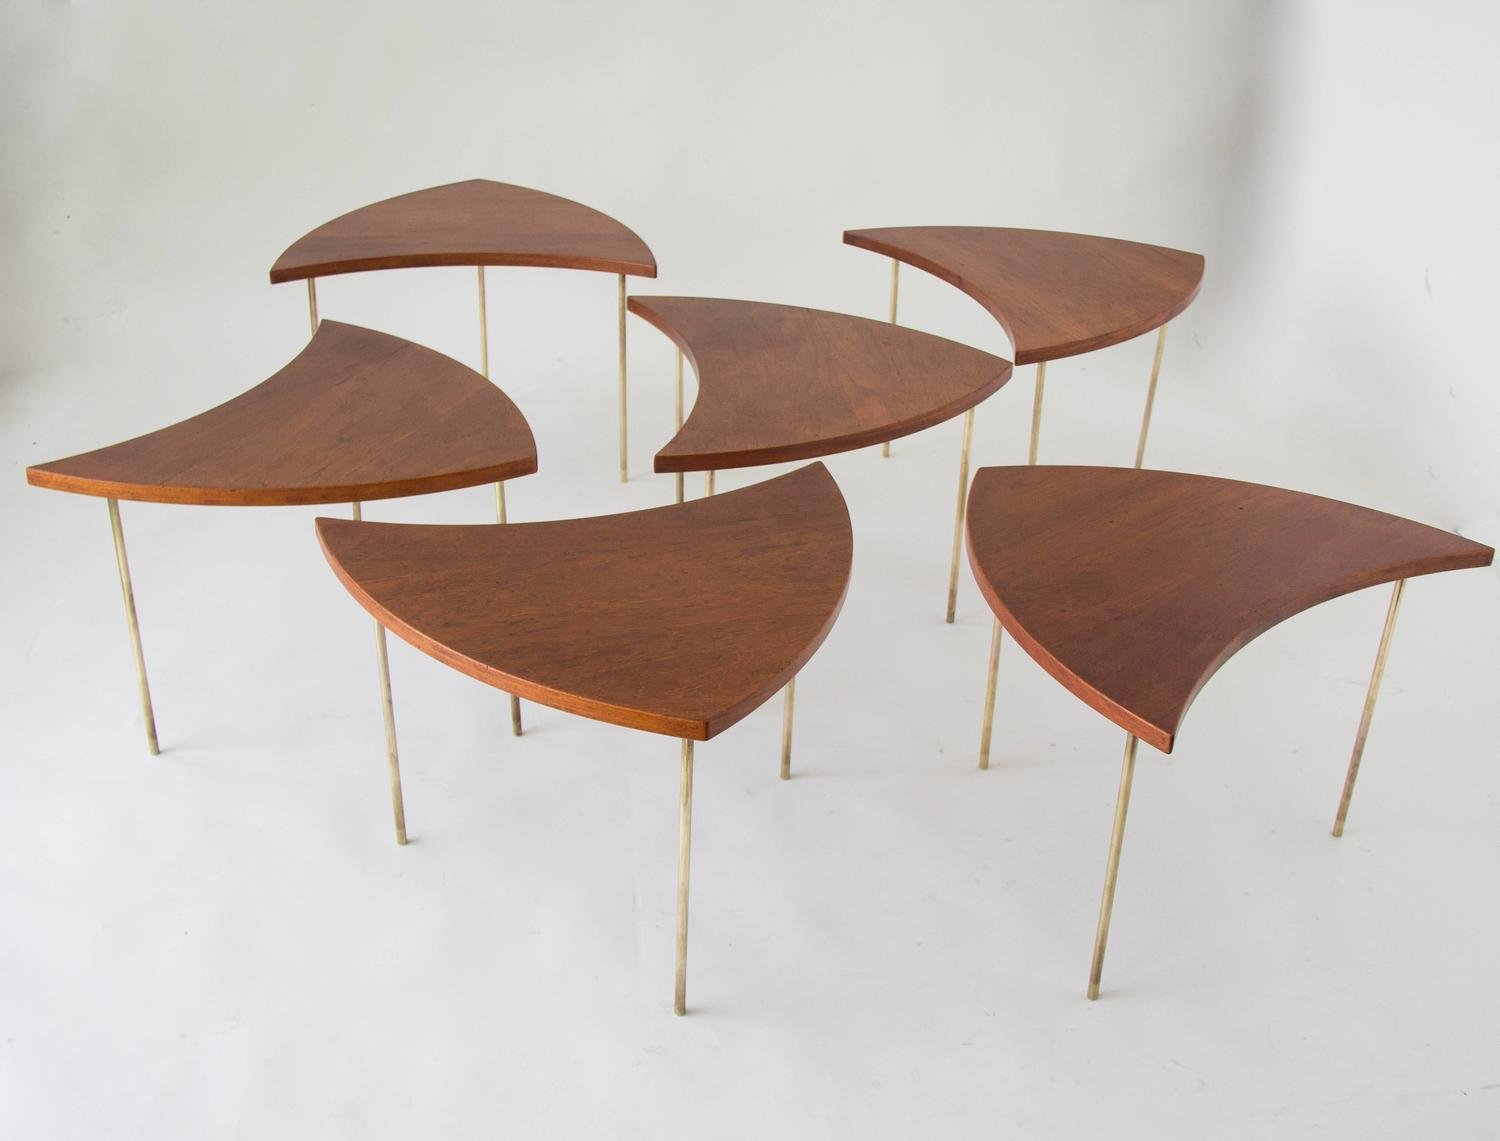 Modular Coffee Table By Peter Hvidt And Orla M Lgaard Nielsen For Sale At 1stdibs